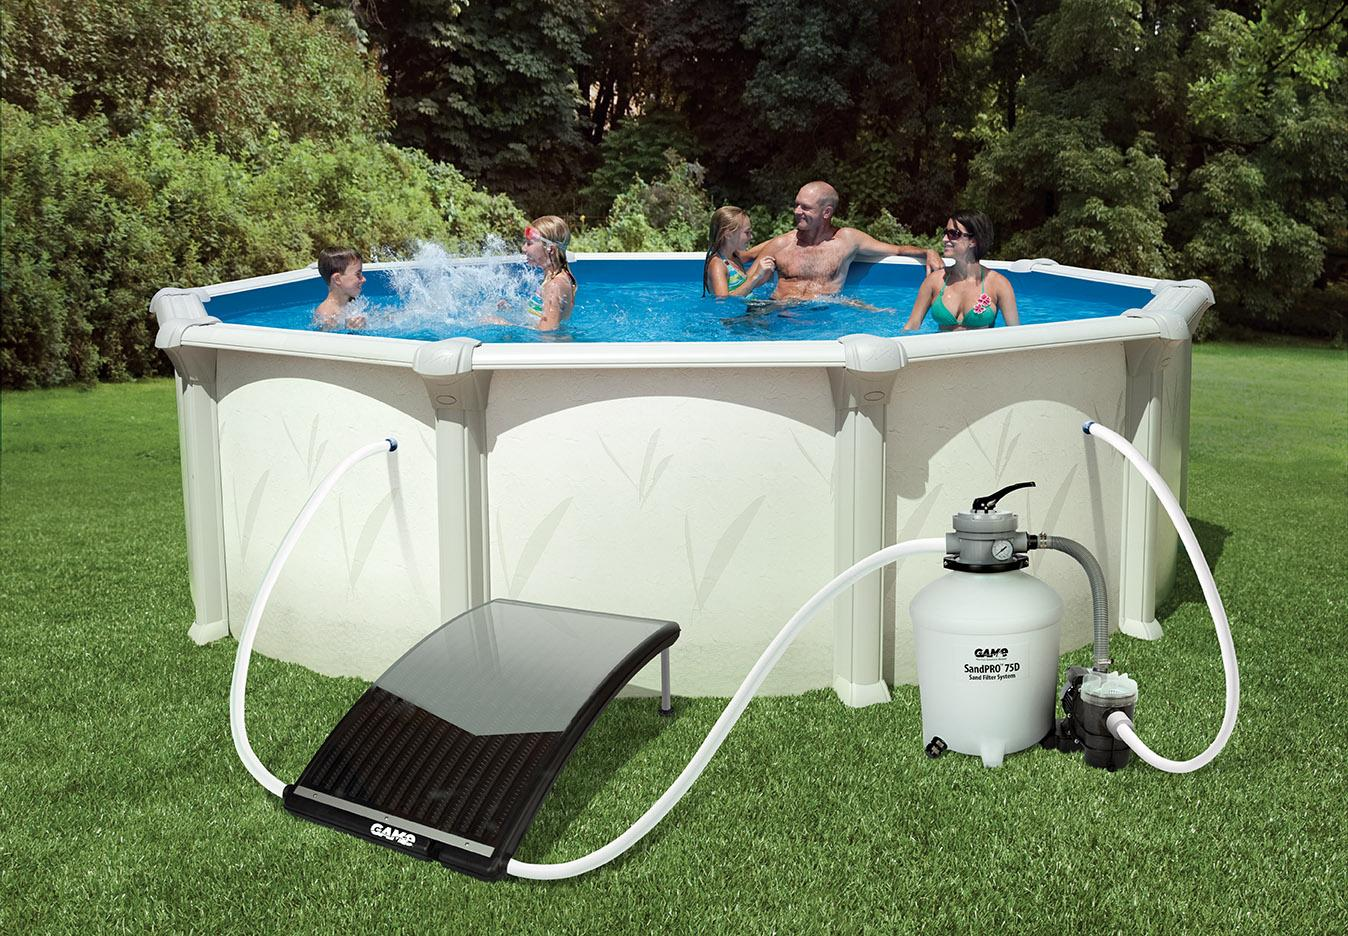 10 best above ground pool heaters in 2019 reviews - Above ground swimming pools reviews ...